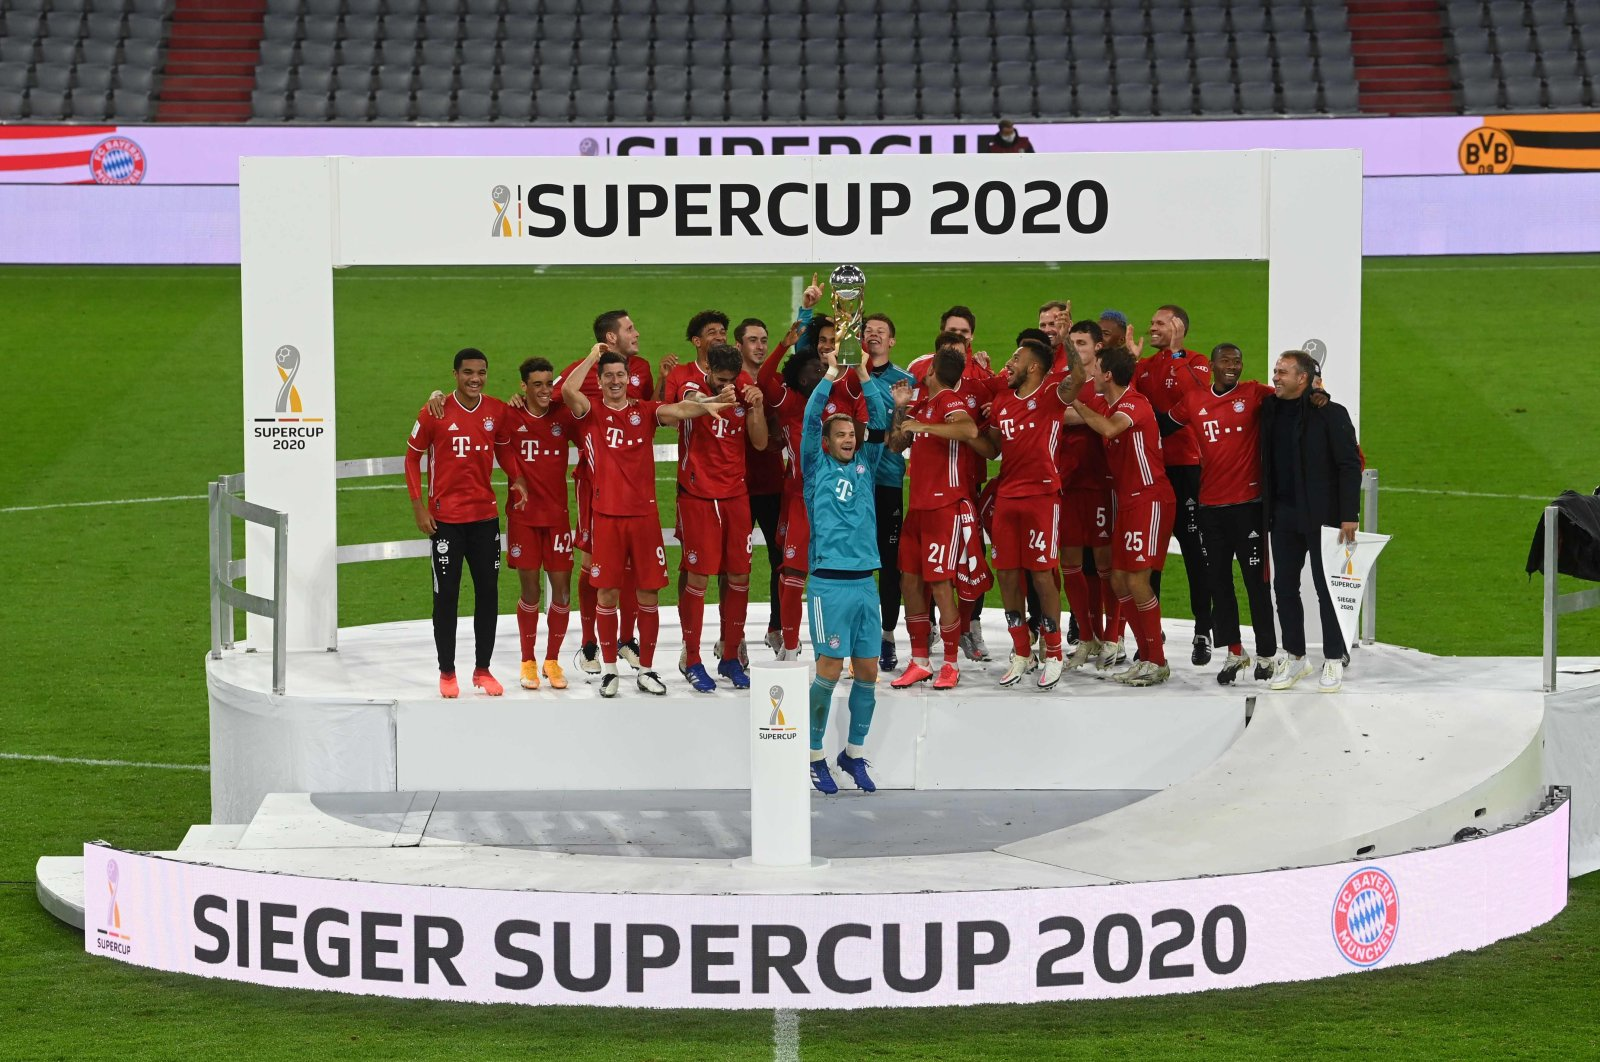 Bayern Munich celebrates winning the German Super Cup trophy at the Allianz Arena in Munich, Germany, Sept. 30, 2020. (AFP Photo)